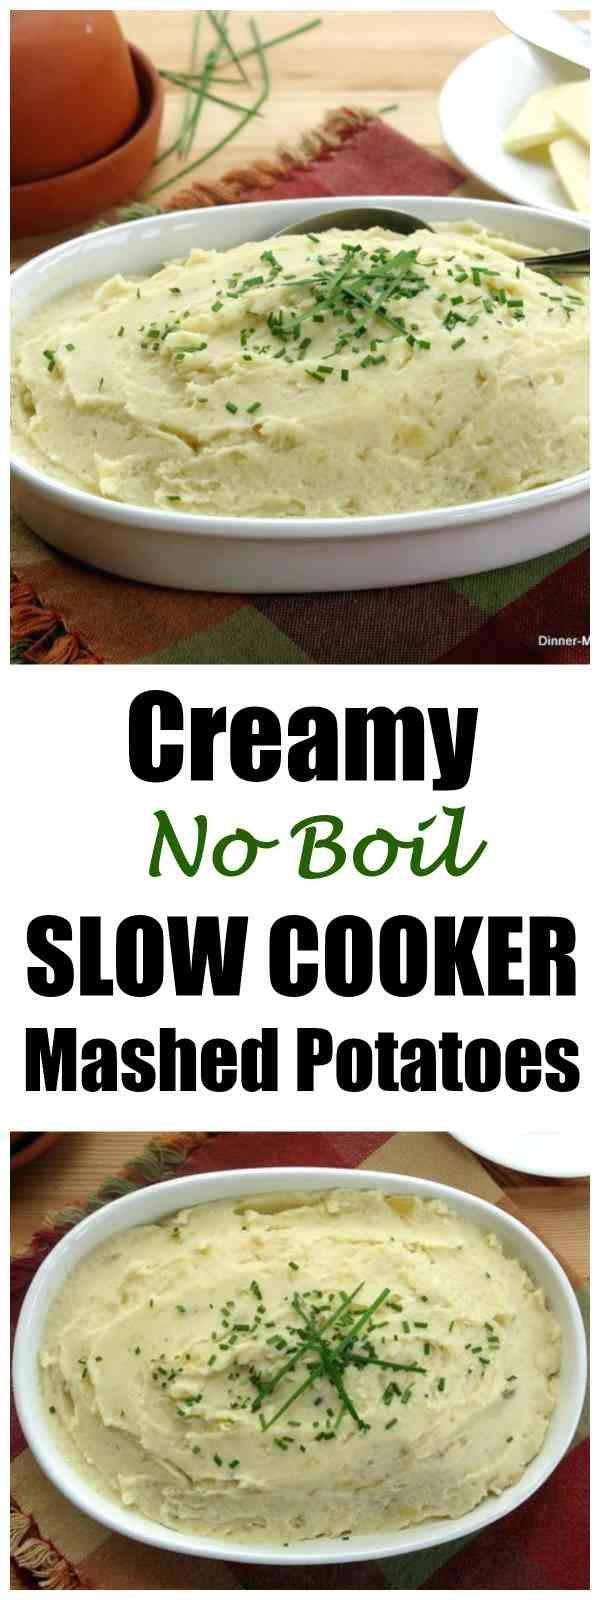 Crockpot Mashed Potatoes for a Crowd with cream cheese. GAME CHANGER - No boiling and one pot to clean! Make ahead and freeze too! #mashedpotatoes